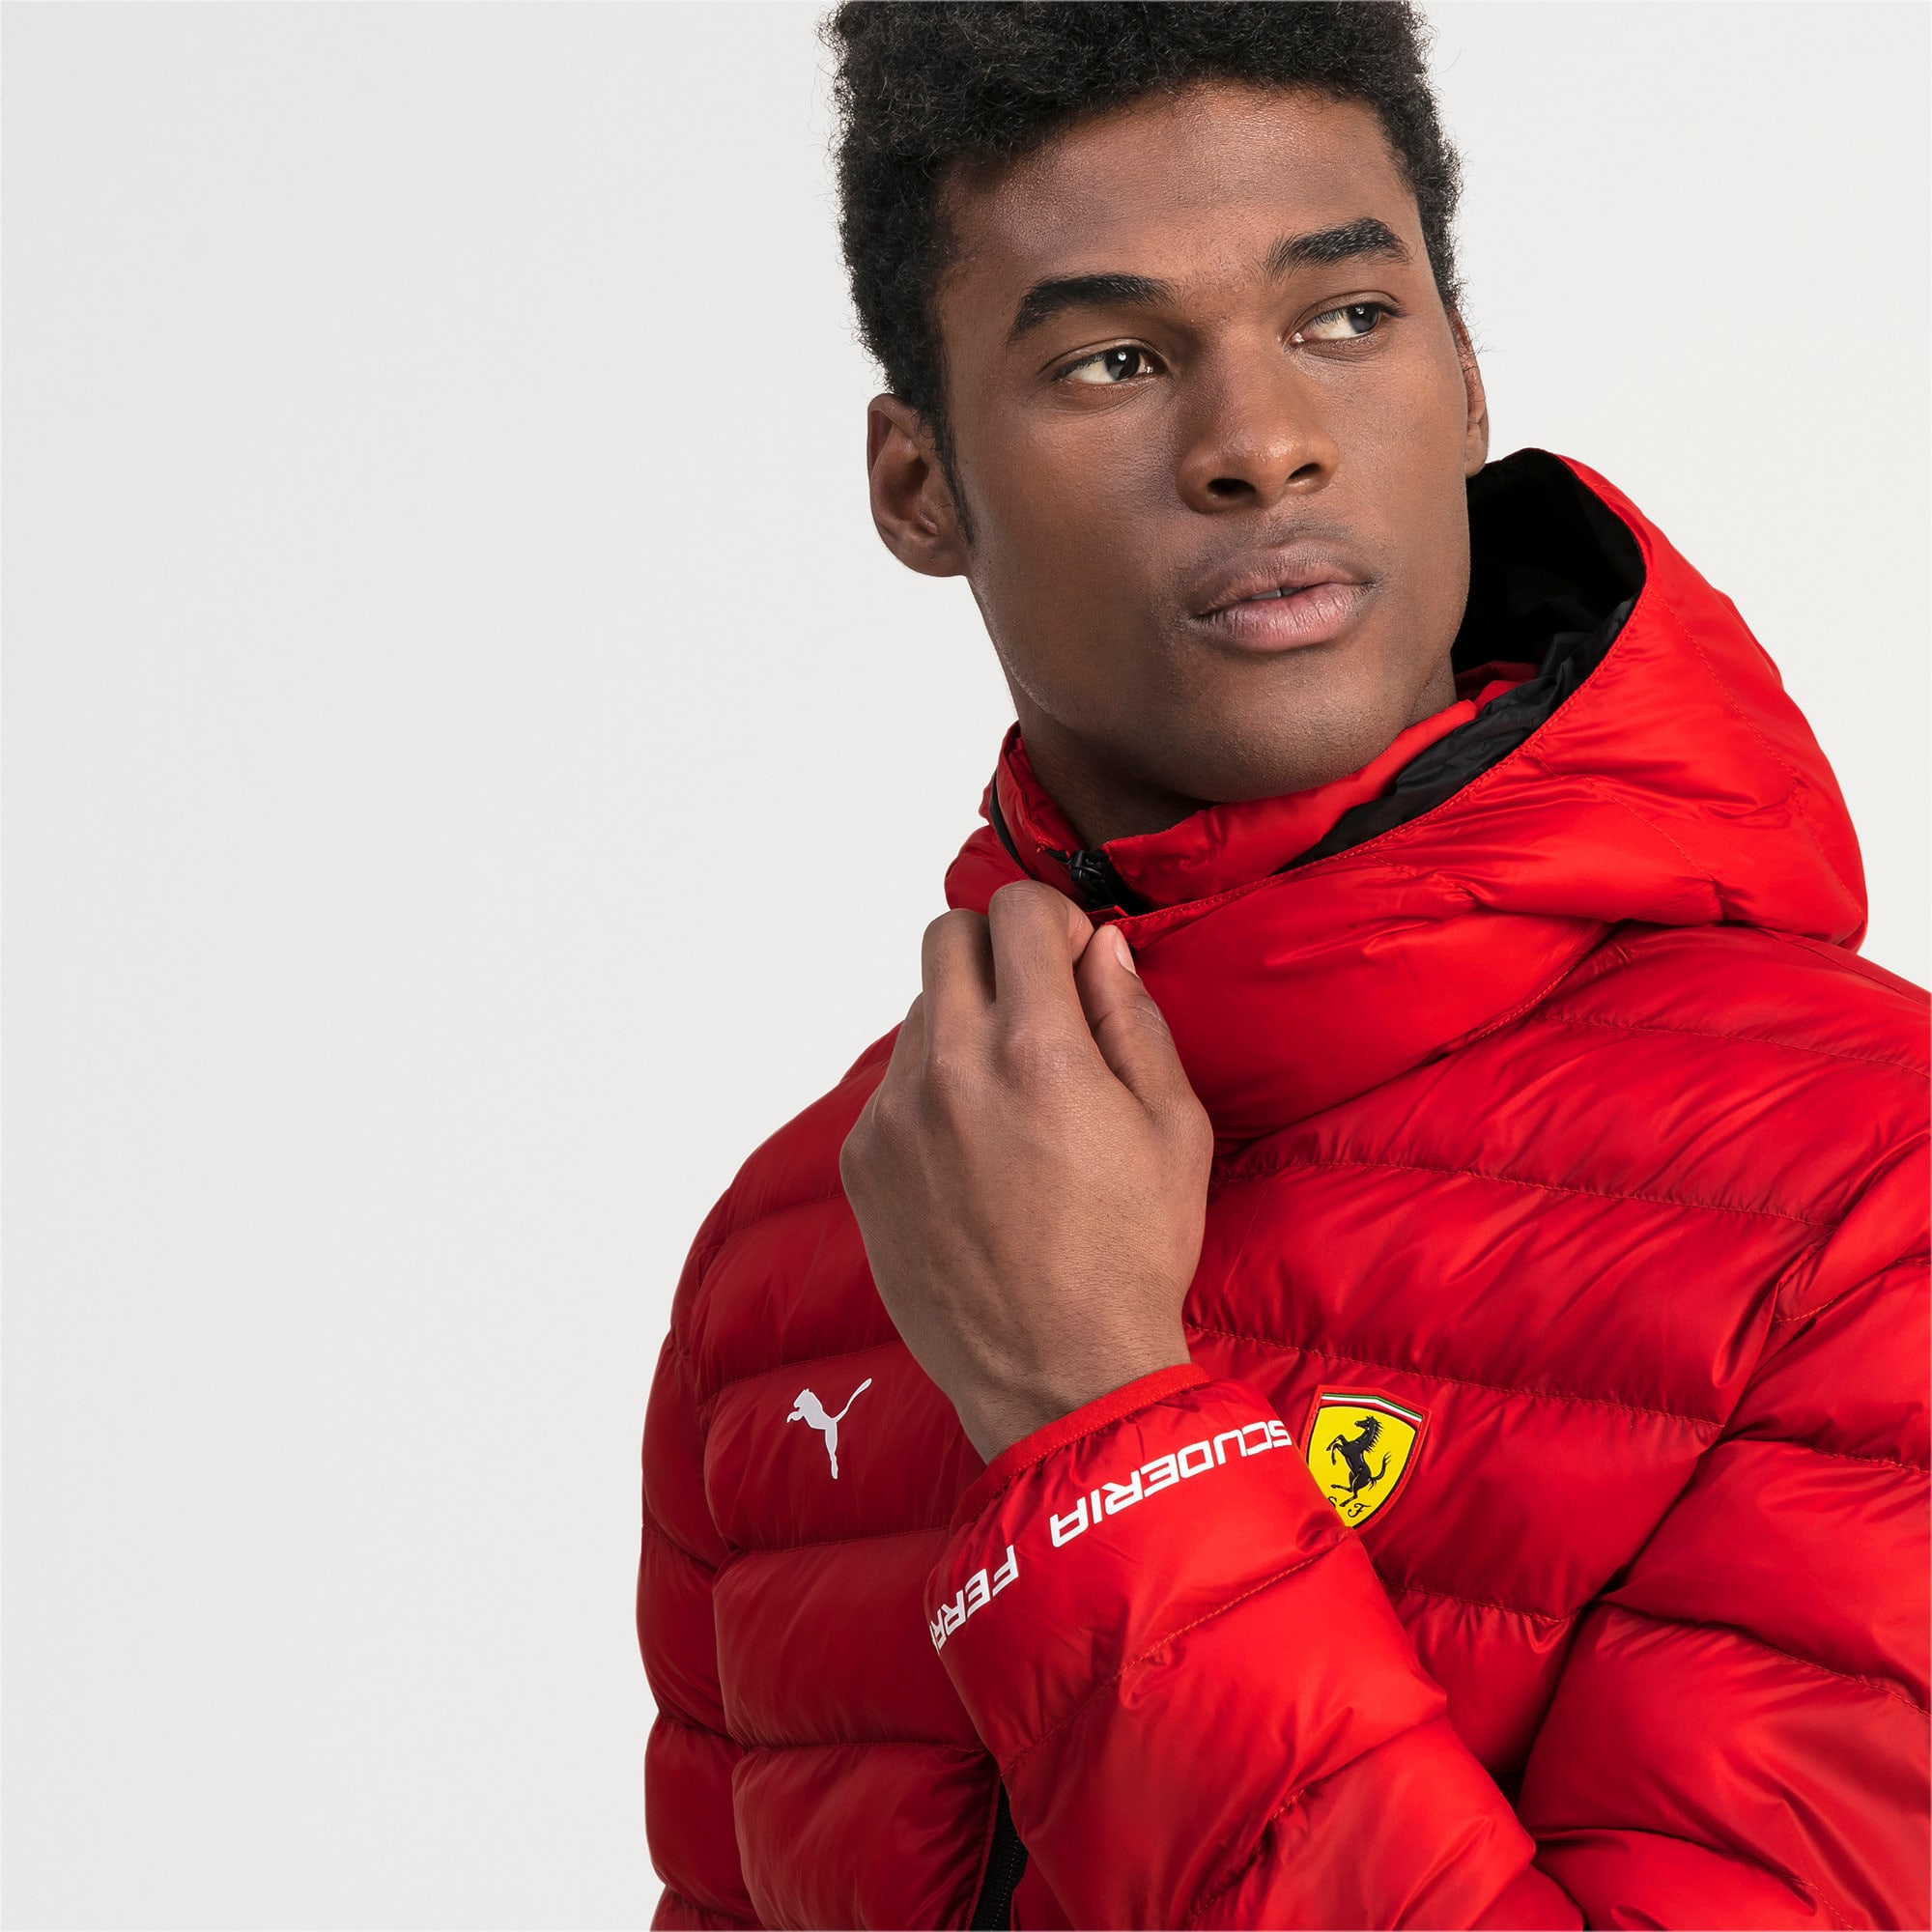 Ferrari Eco PackLITE jas voor mannen, Rosso Corsa, large